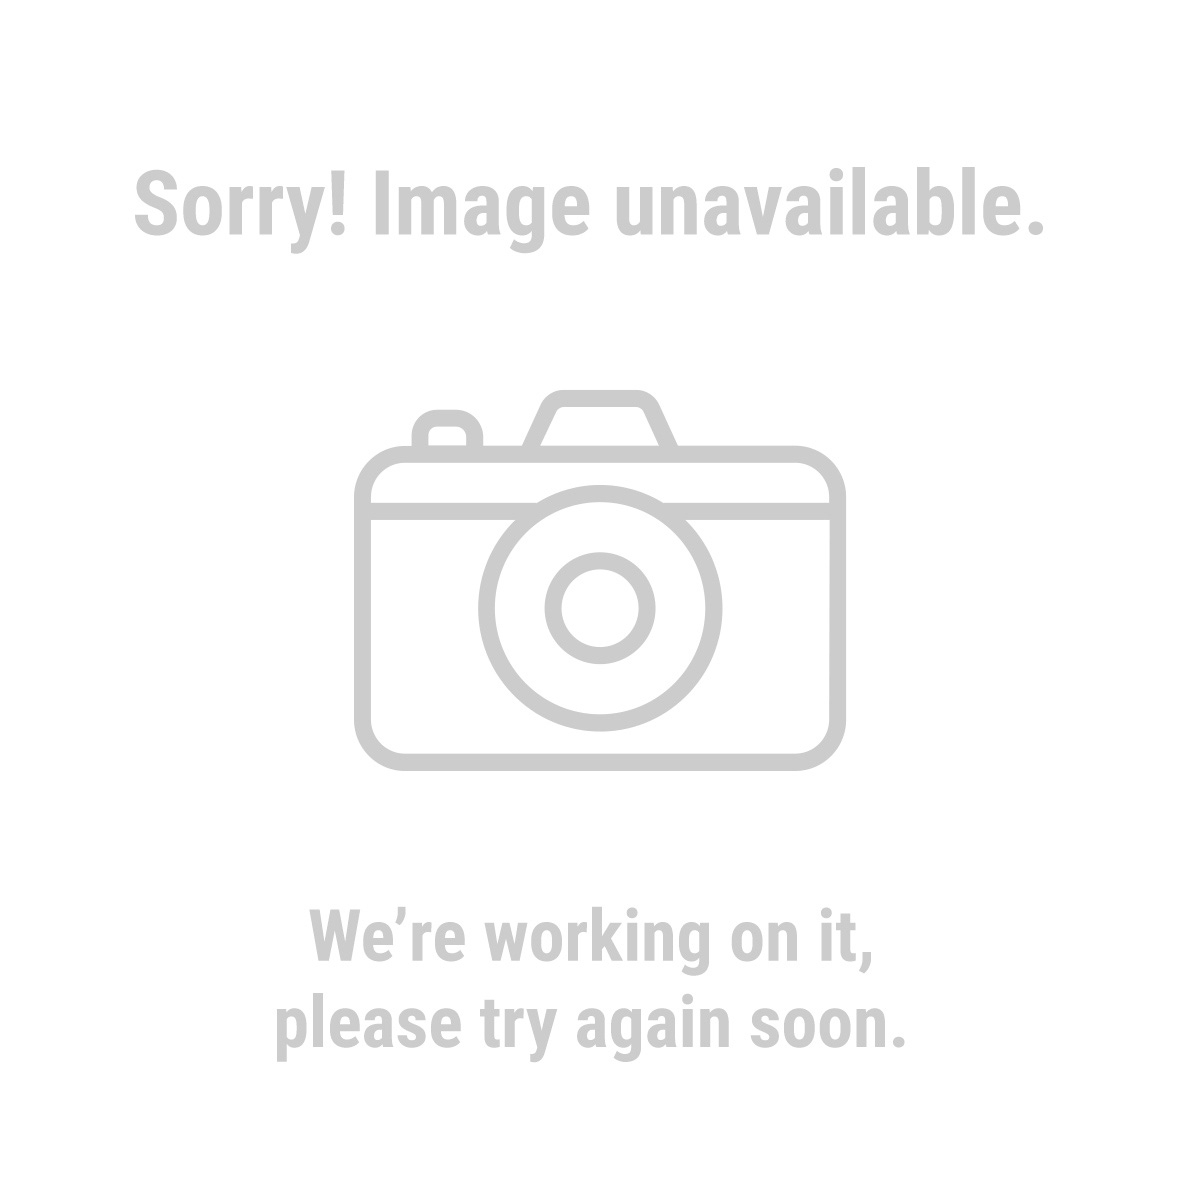 U.S. General 93644 12 Piece Diesel Engine Compression Tester